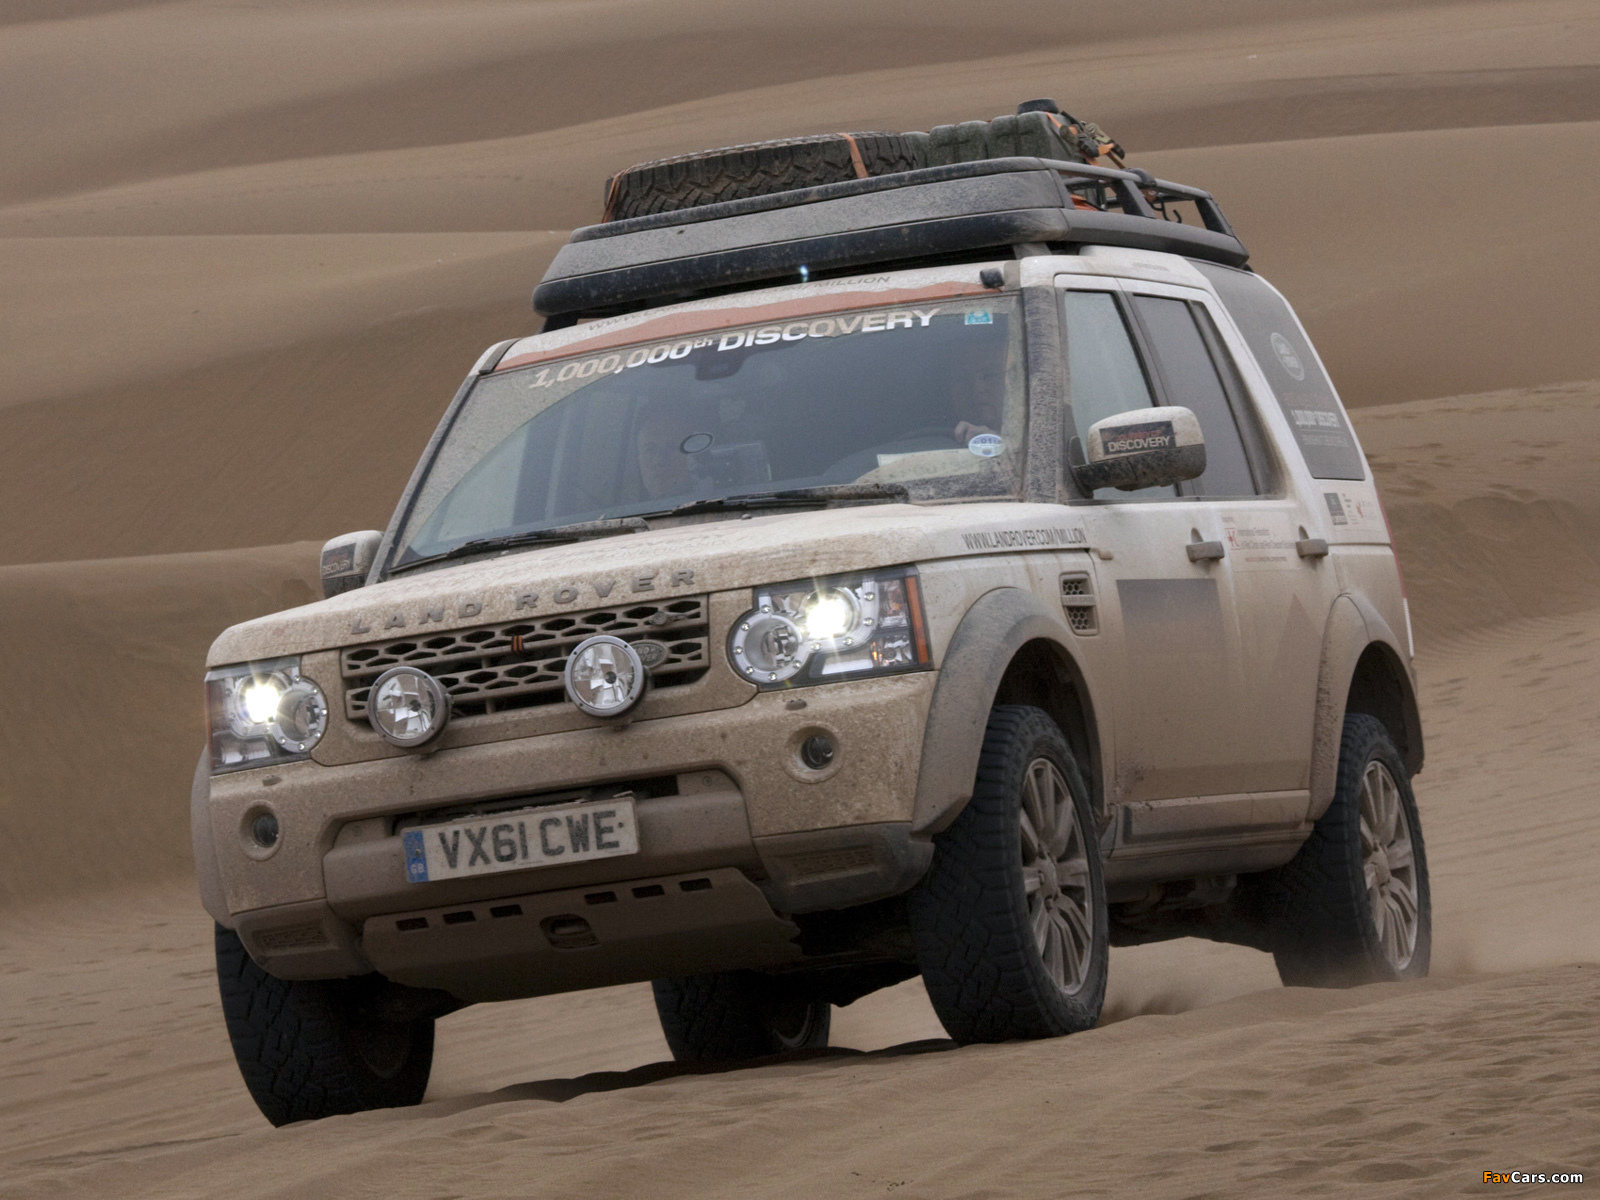 Land Rover Discovery 4 Expedition Vehicle 2012 wallpapers